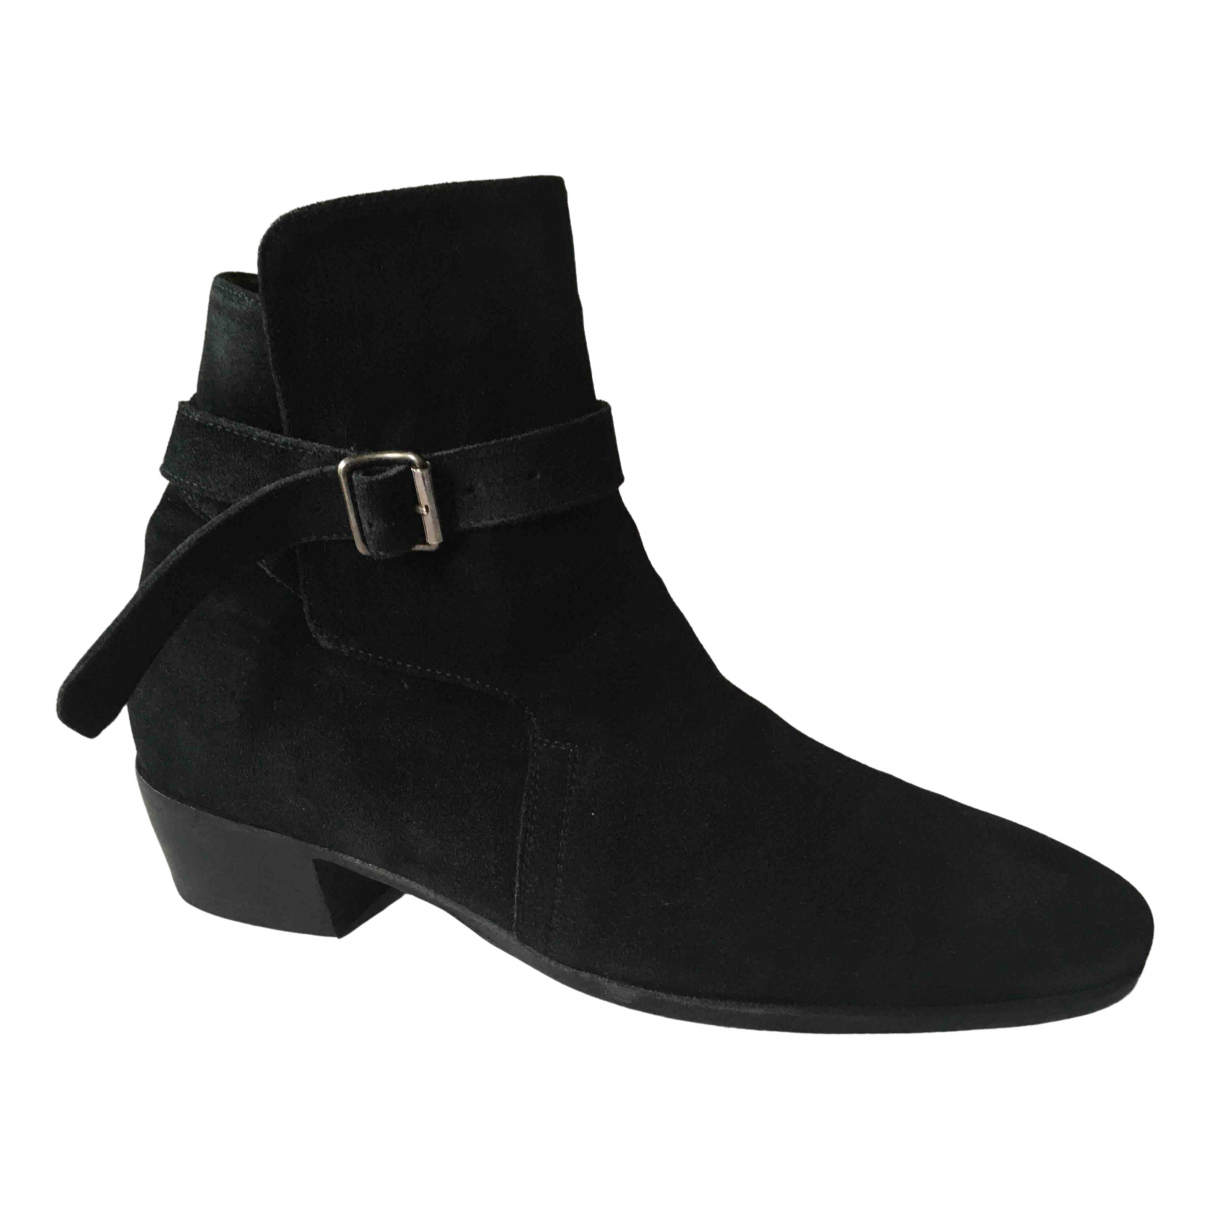 Jean-michel Cazabat \N Black Suede Boots for Men 41 EU